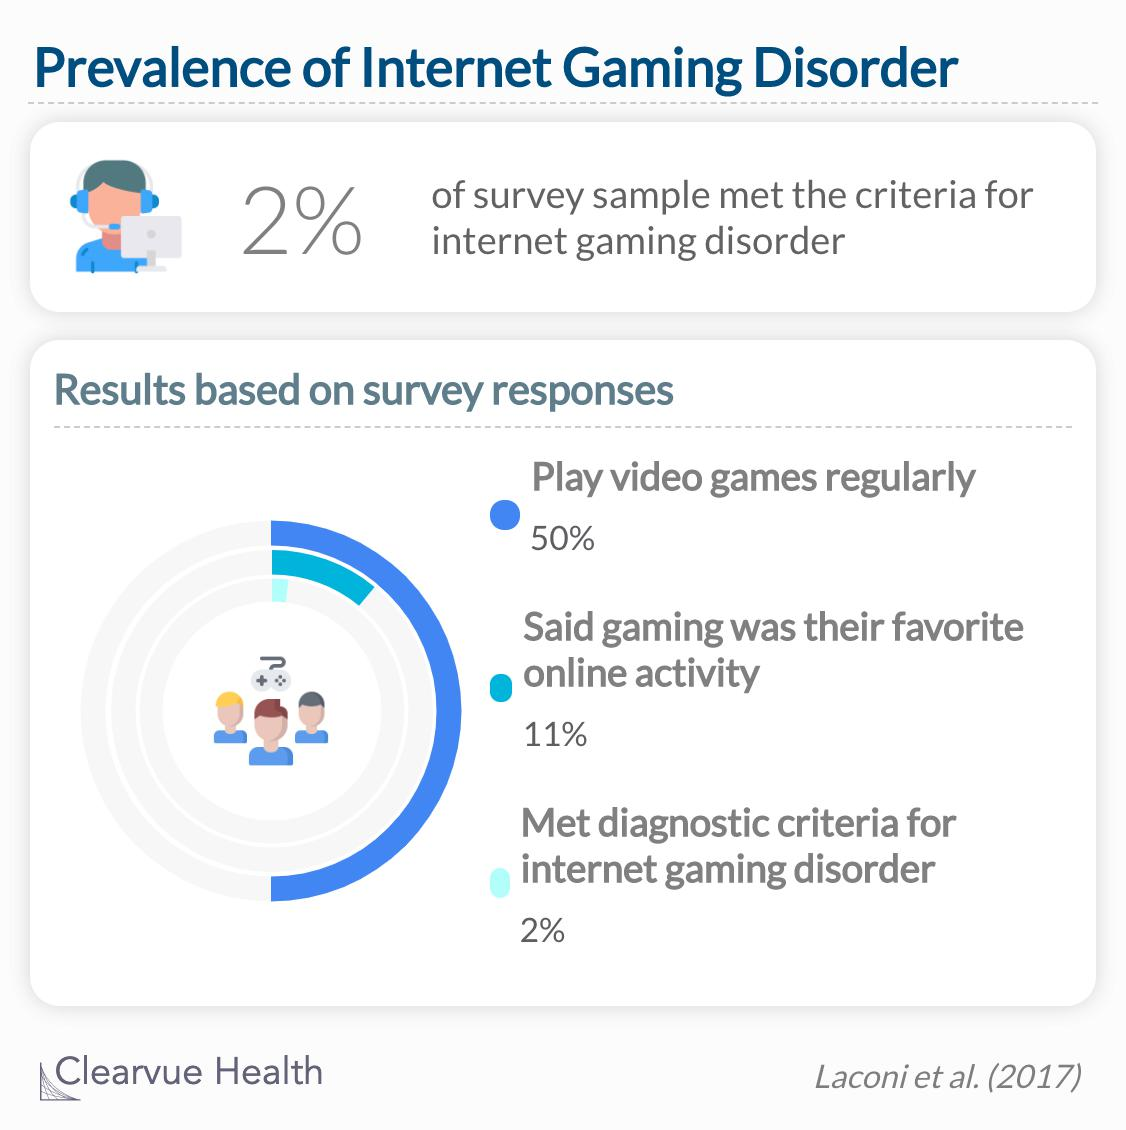 2% of the survey sample met criteria for internet gaming disorder